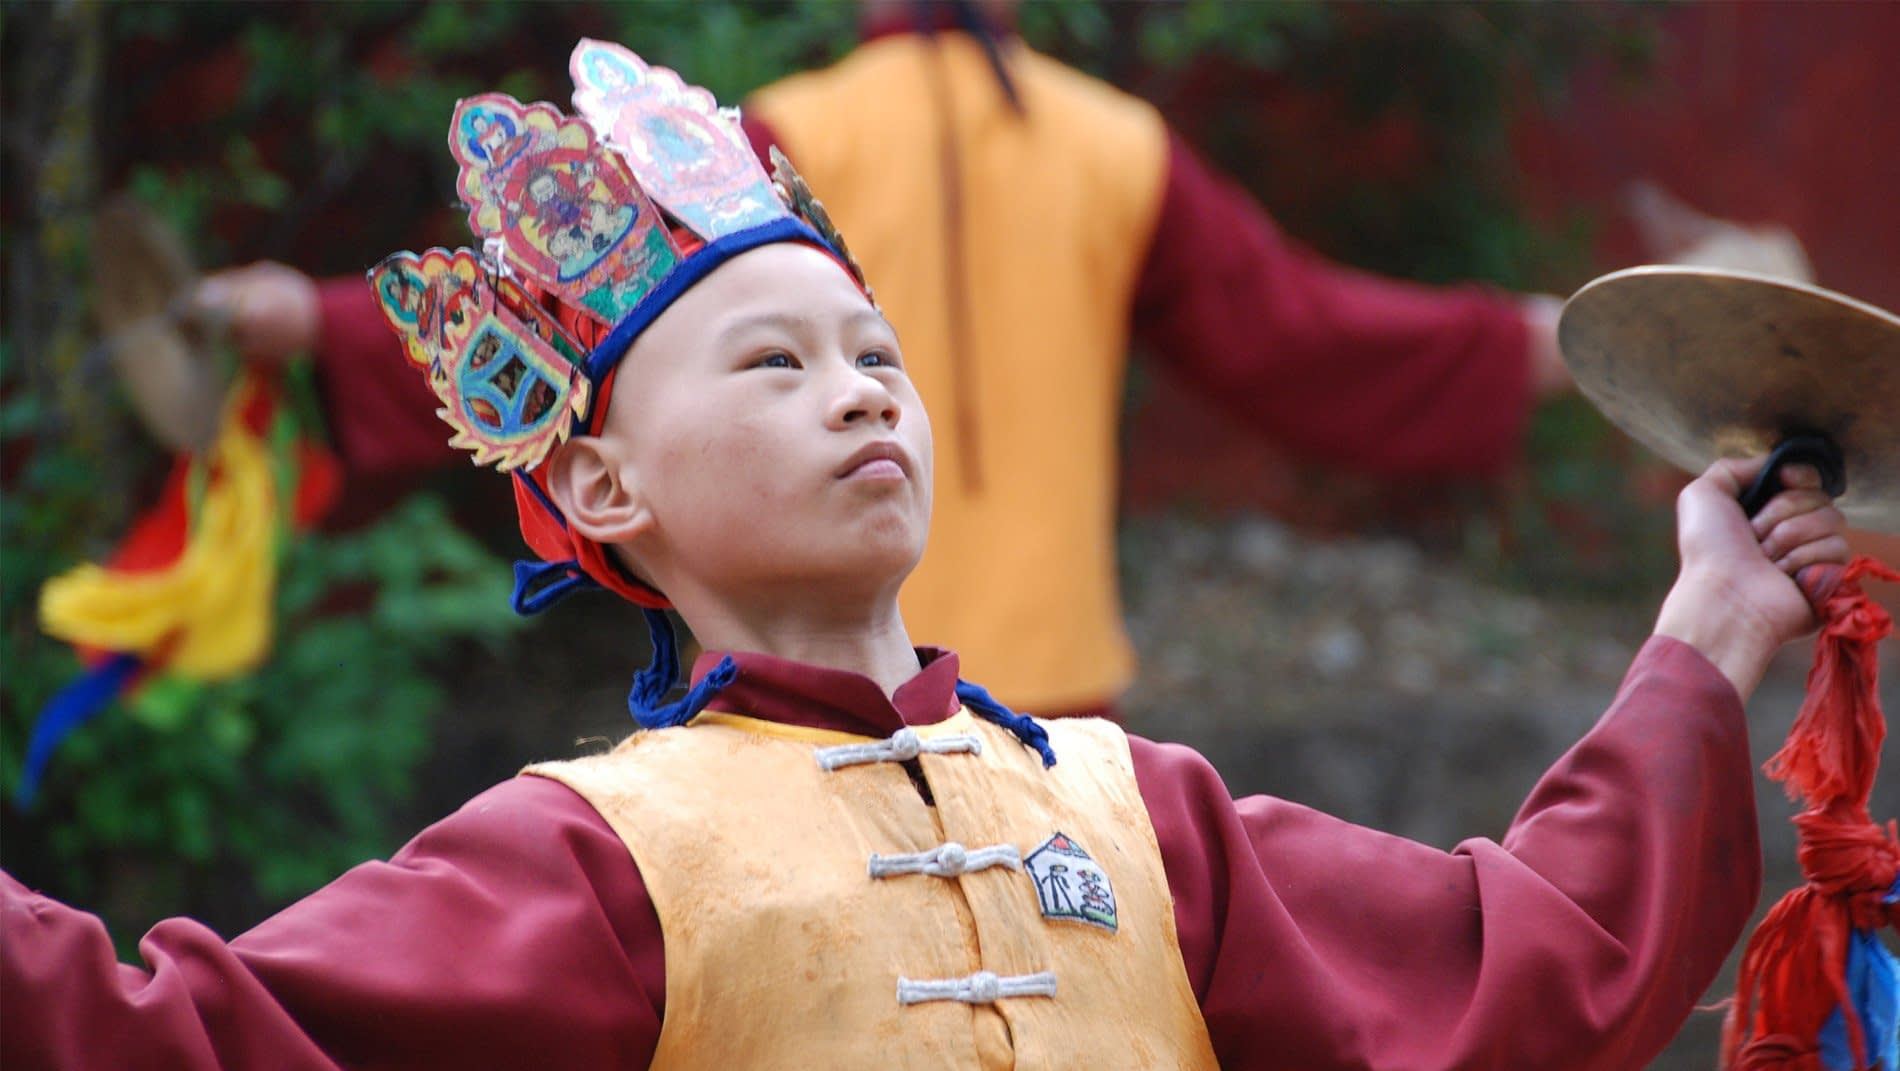 Dongba (Shaman)~Dongba, translated into English as shaman, come in many forms. Though some claim to access the spirit world, this young boy is at a seminary studying how to perform the official functions (e.g. births, deaths & marriages) of a religious functionary.